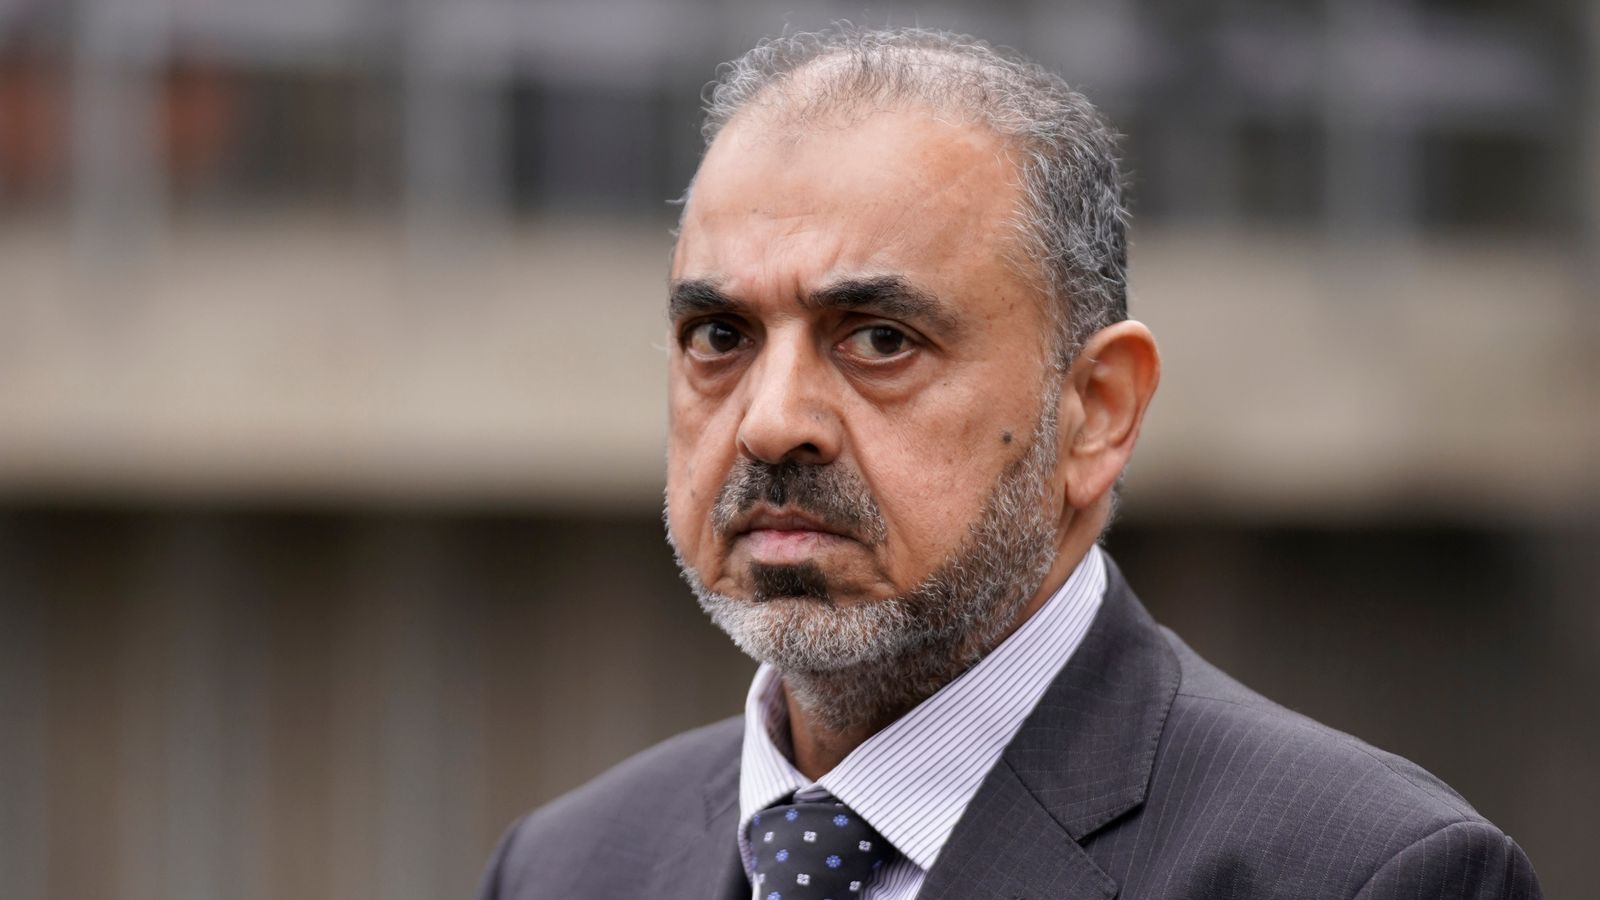 Lord Nazir Ahmed: Peer quits after report finds he breached code of conduct  | UK News | Sky News